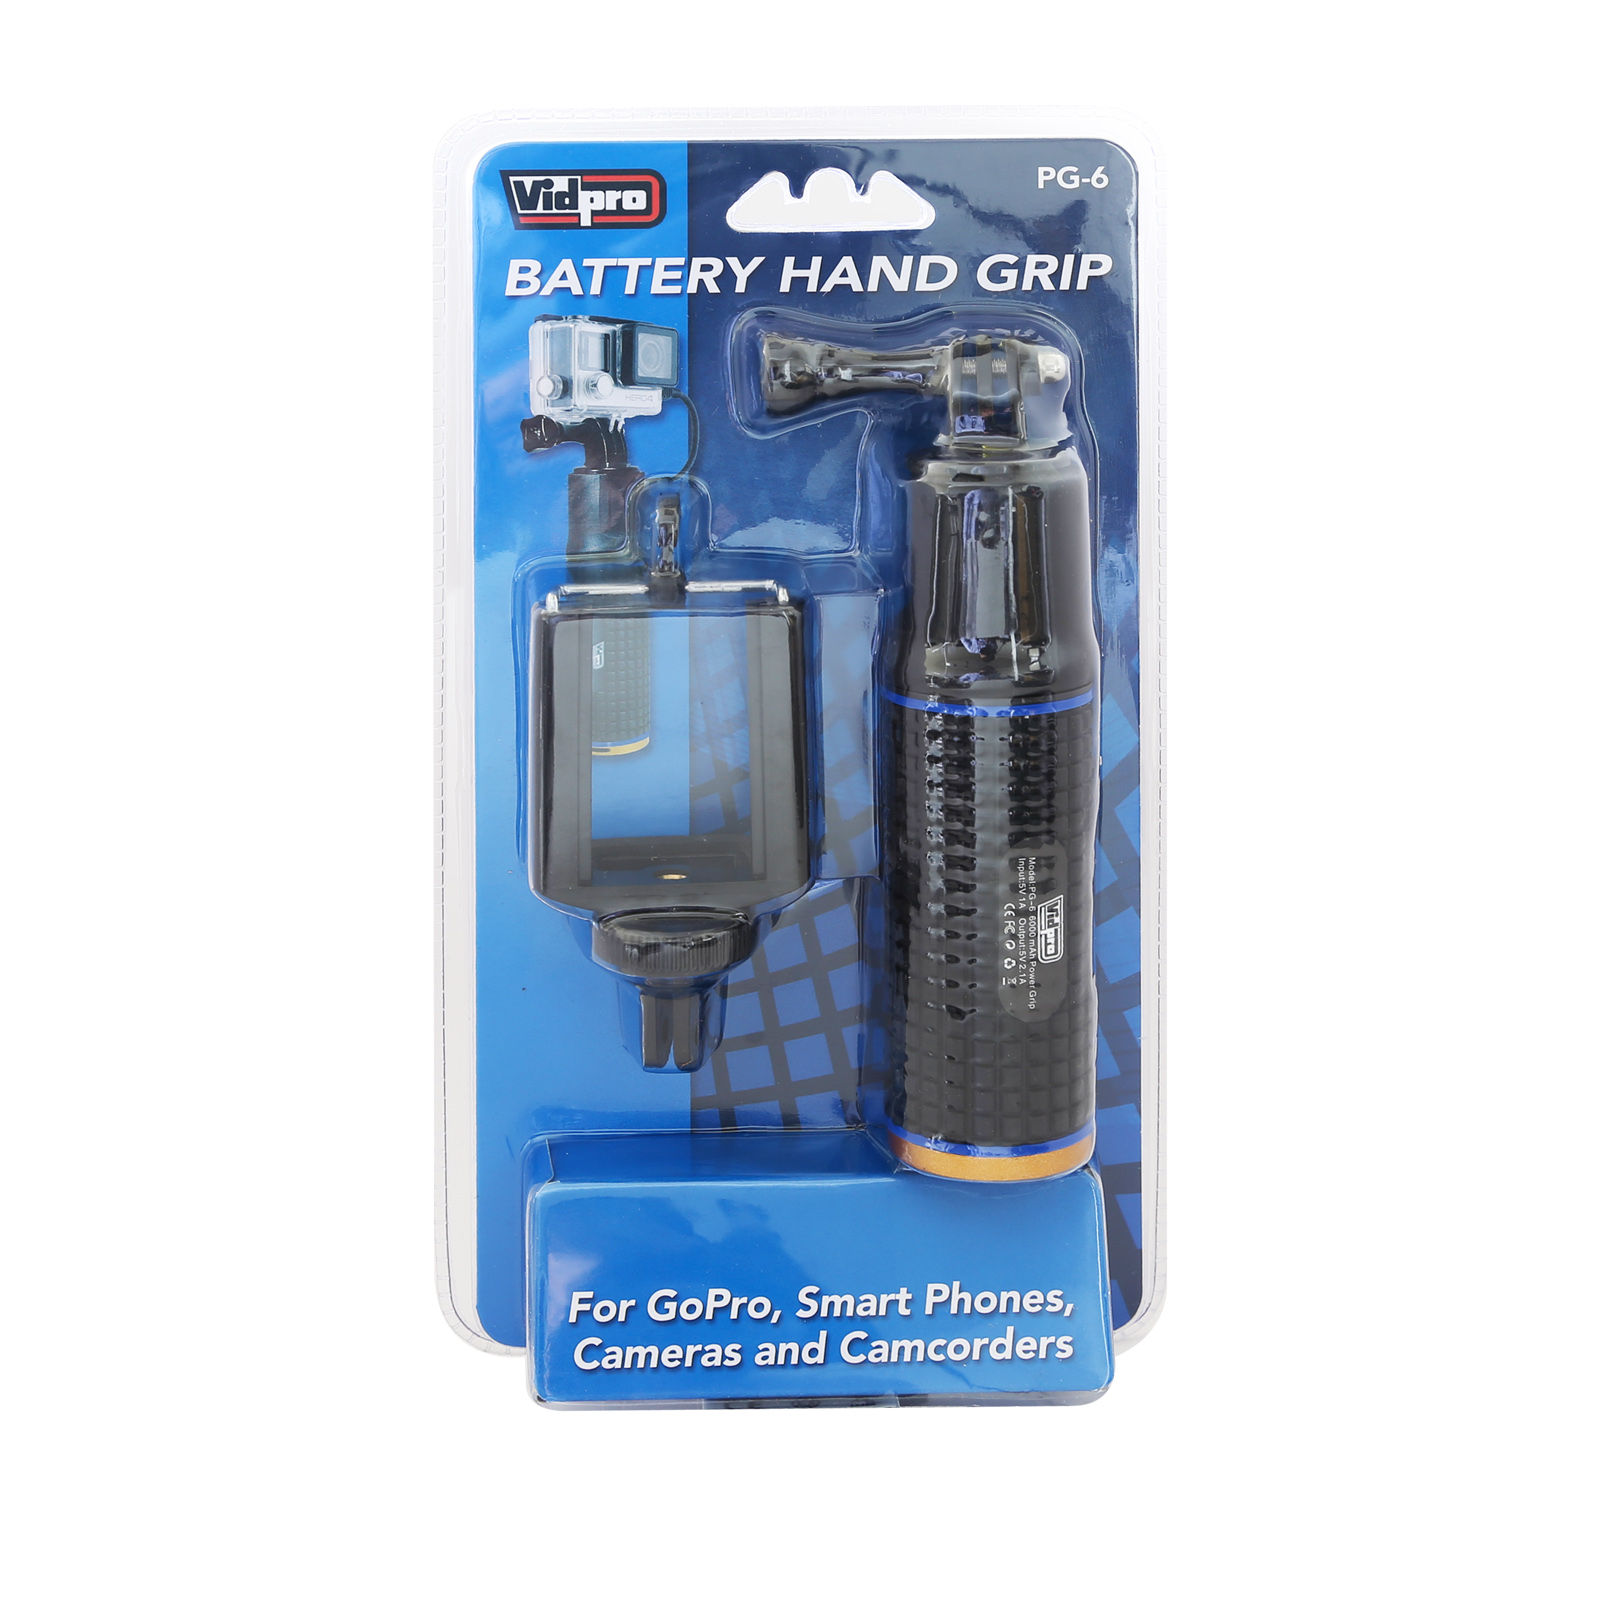 PG-6 Battery Hand Grip for Smartphones, cameras and camcorders